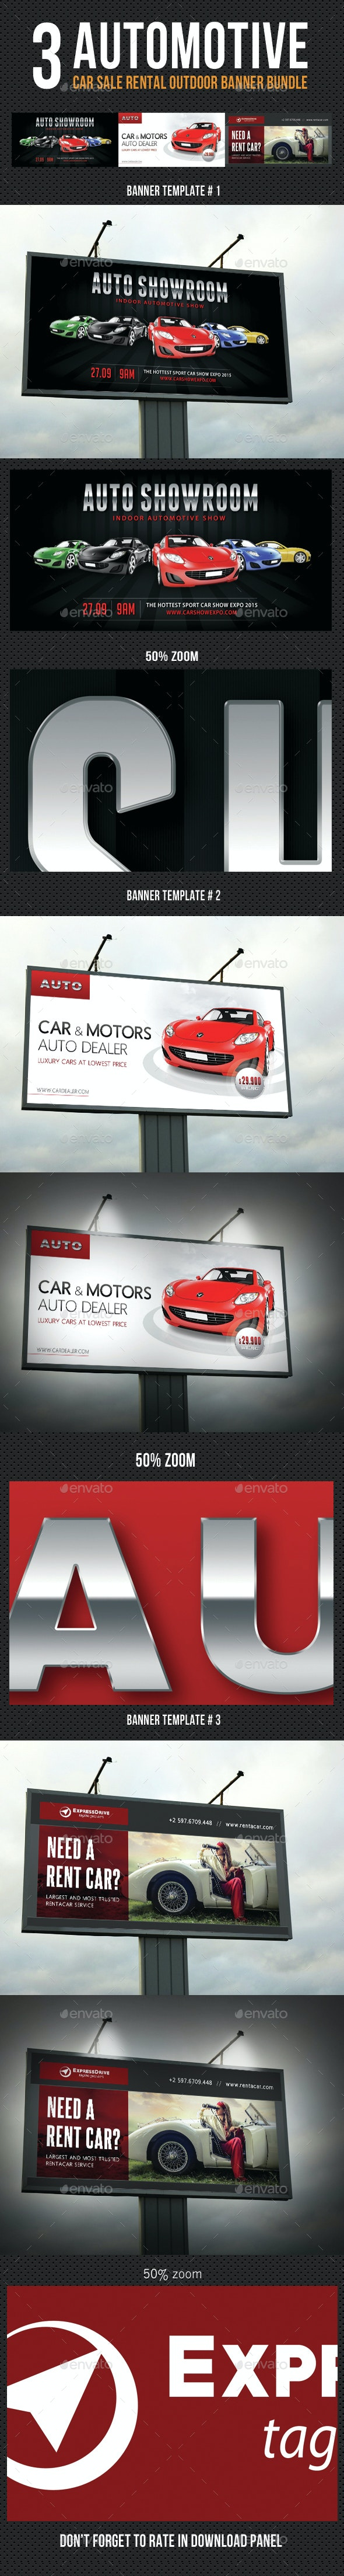 3 Automotive Car Sale Rental Outdoor Banner Bundle - Signage Print Templates